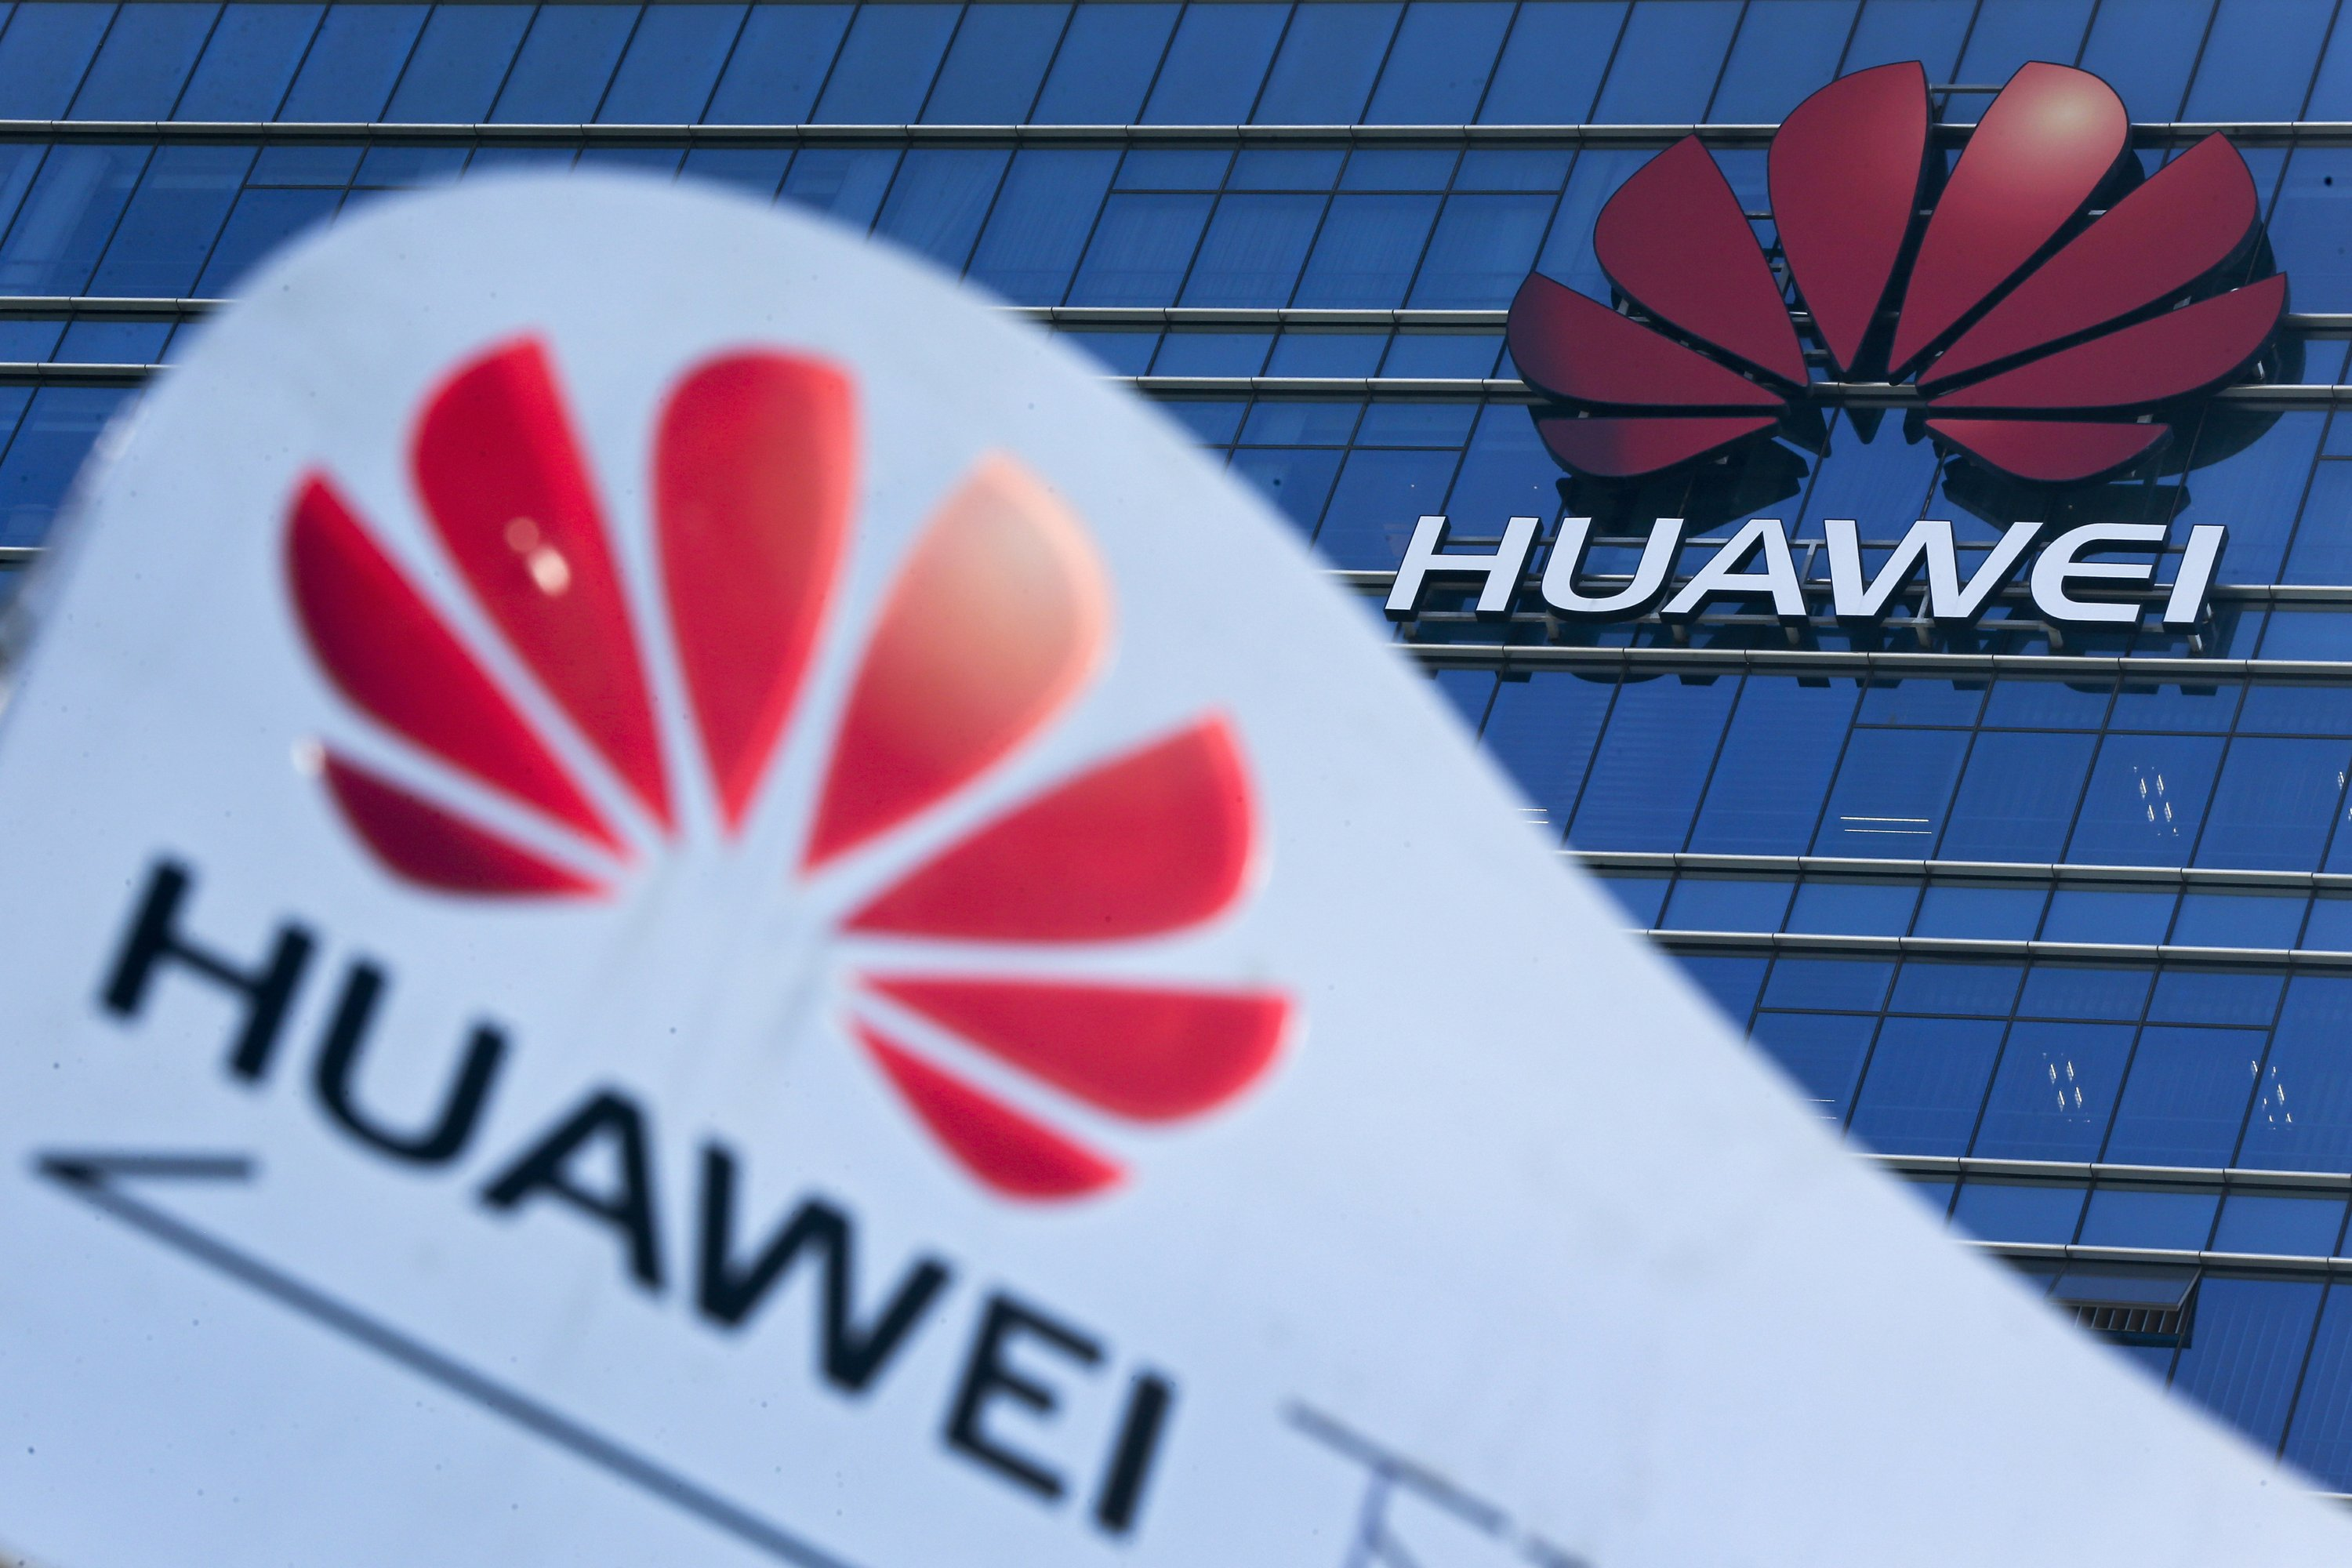 Huawei says doesn't wish to escalate further with Czech cyber watchdog